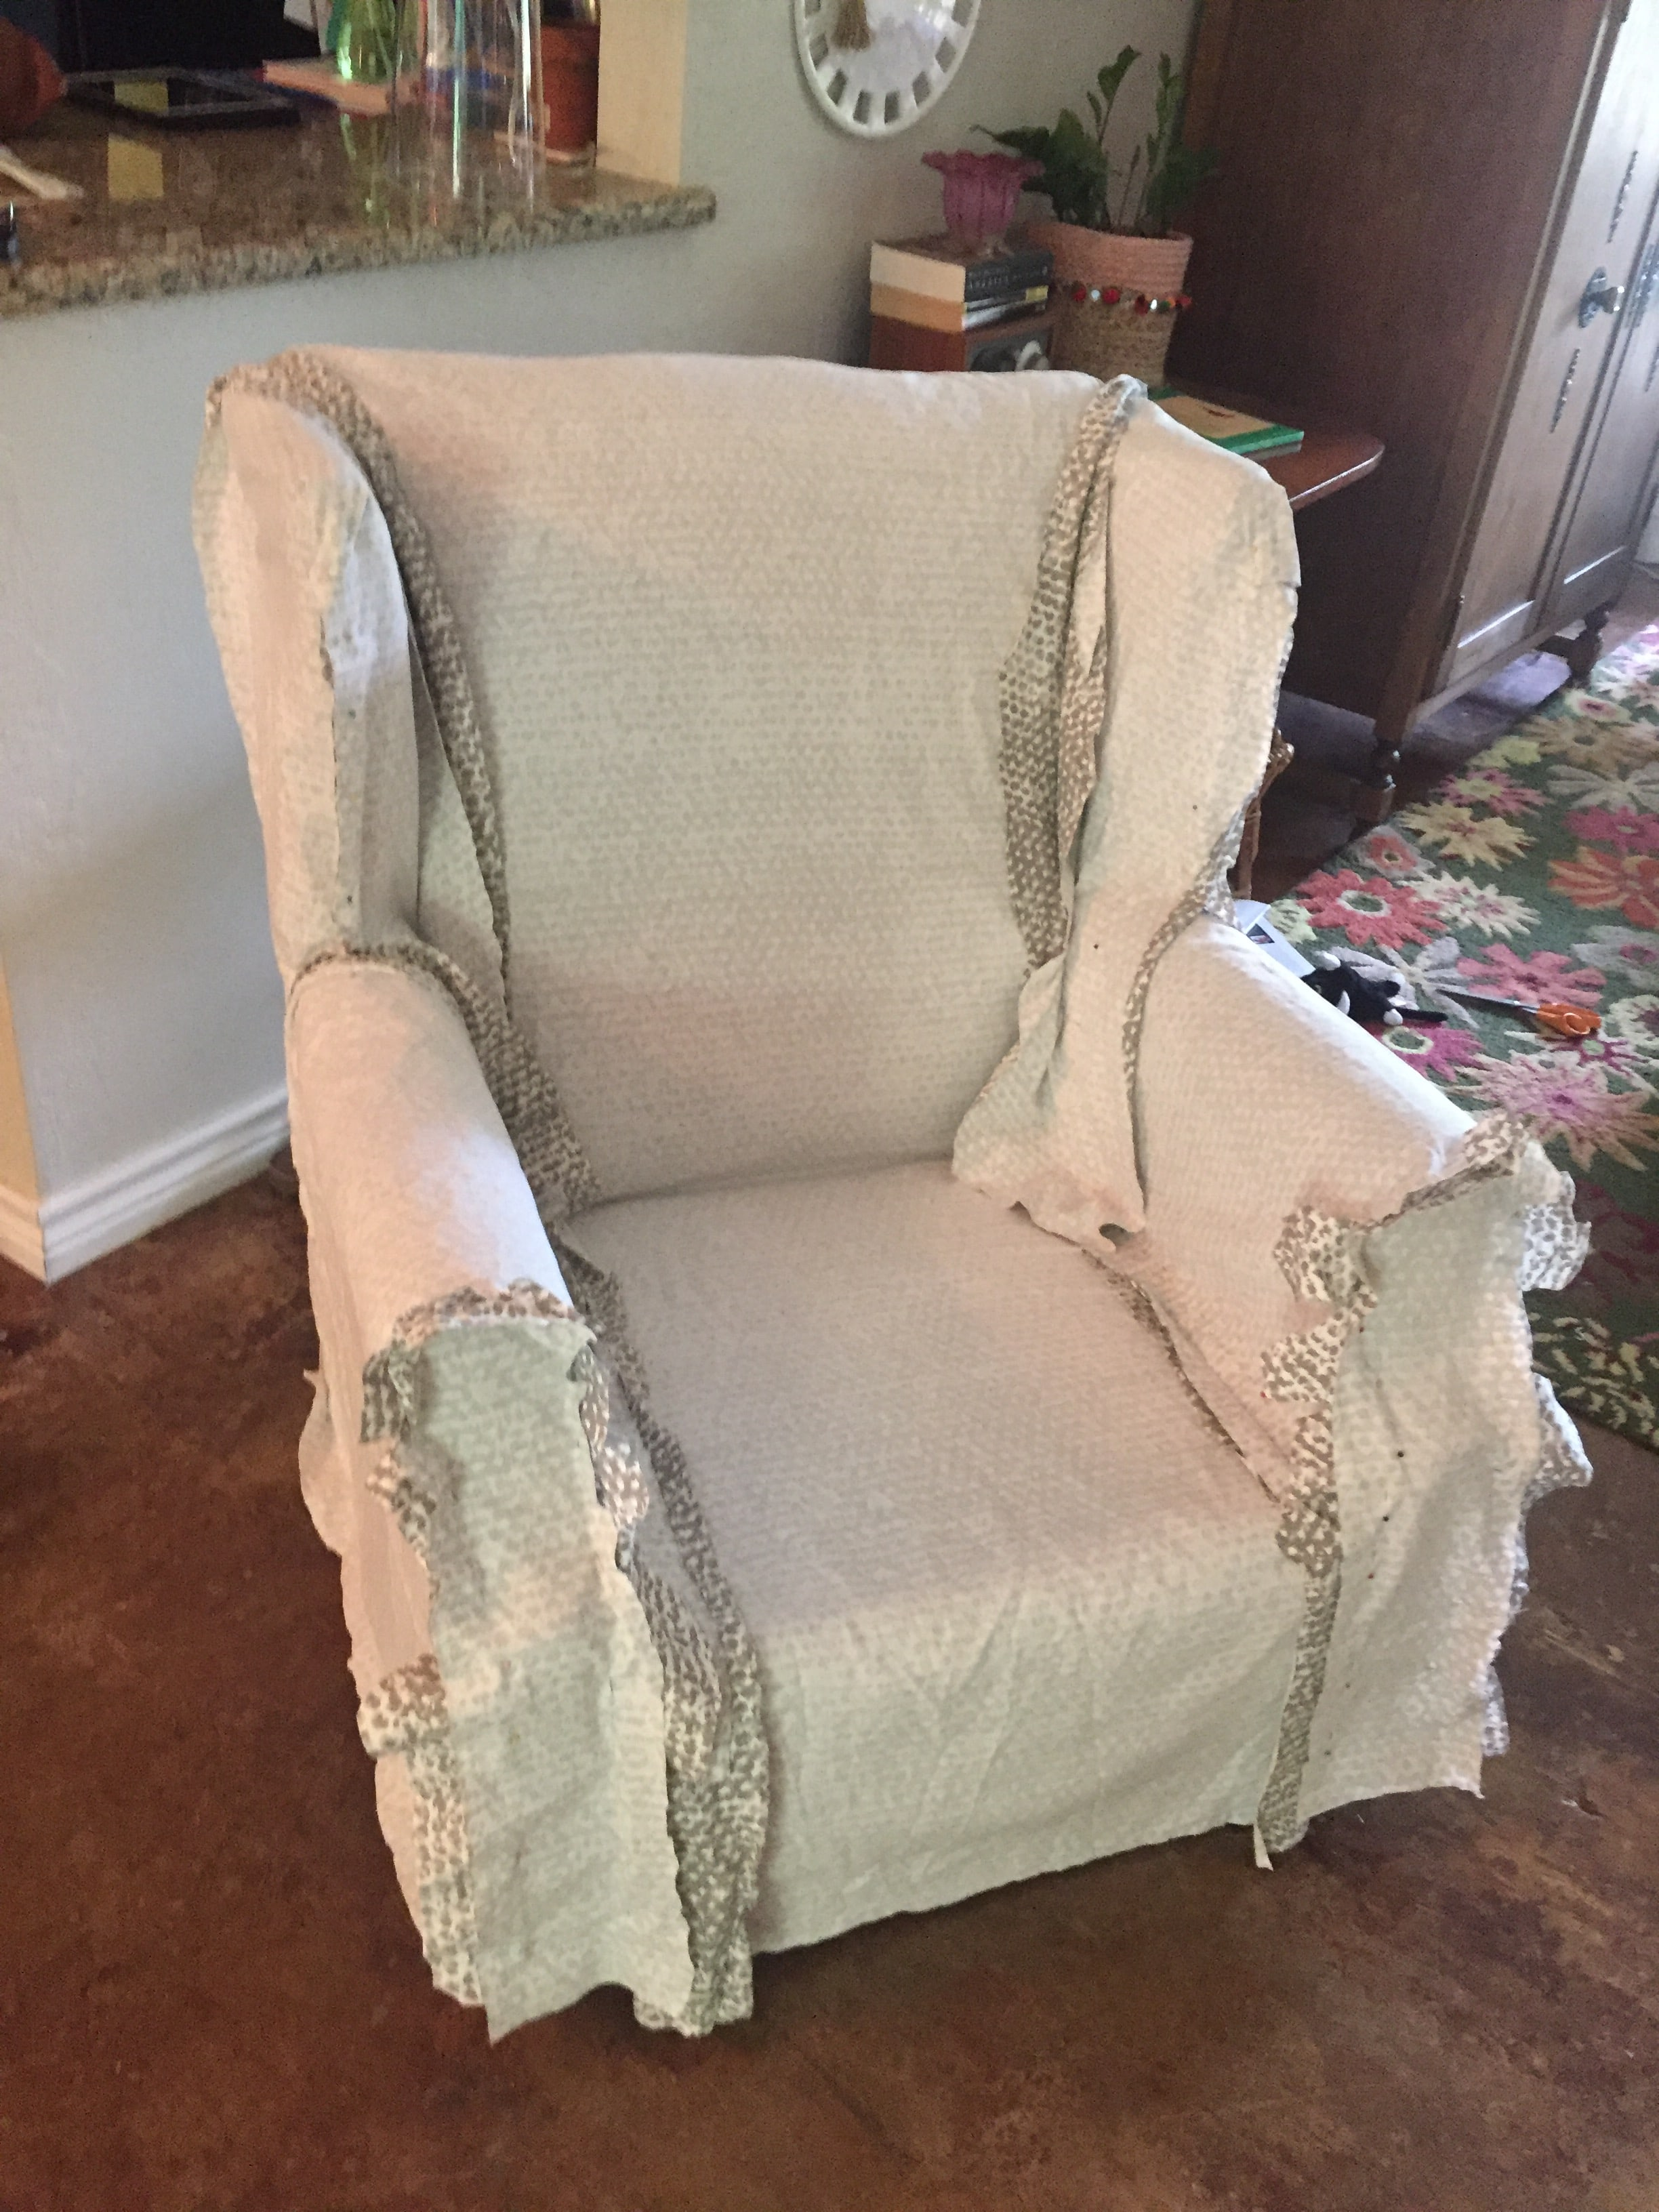 Slip Cover For Chair Wingback Chair Slipcover Tutorial Create Your Own Diy